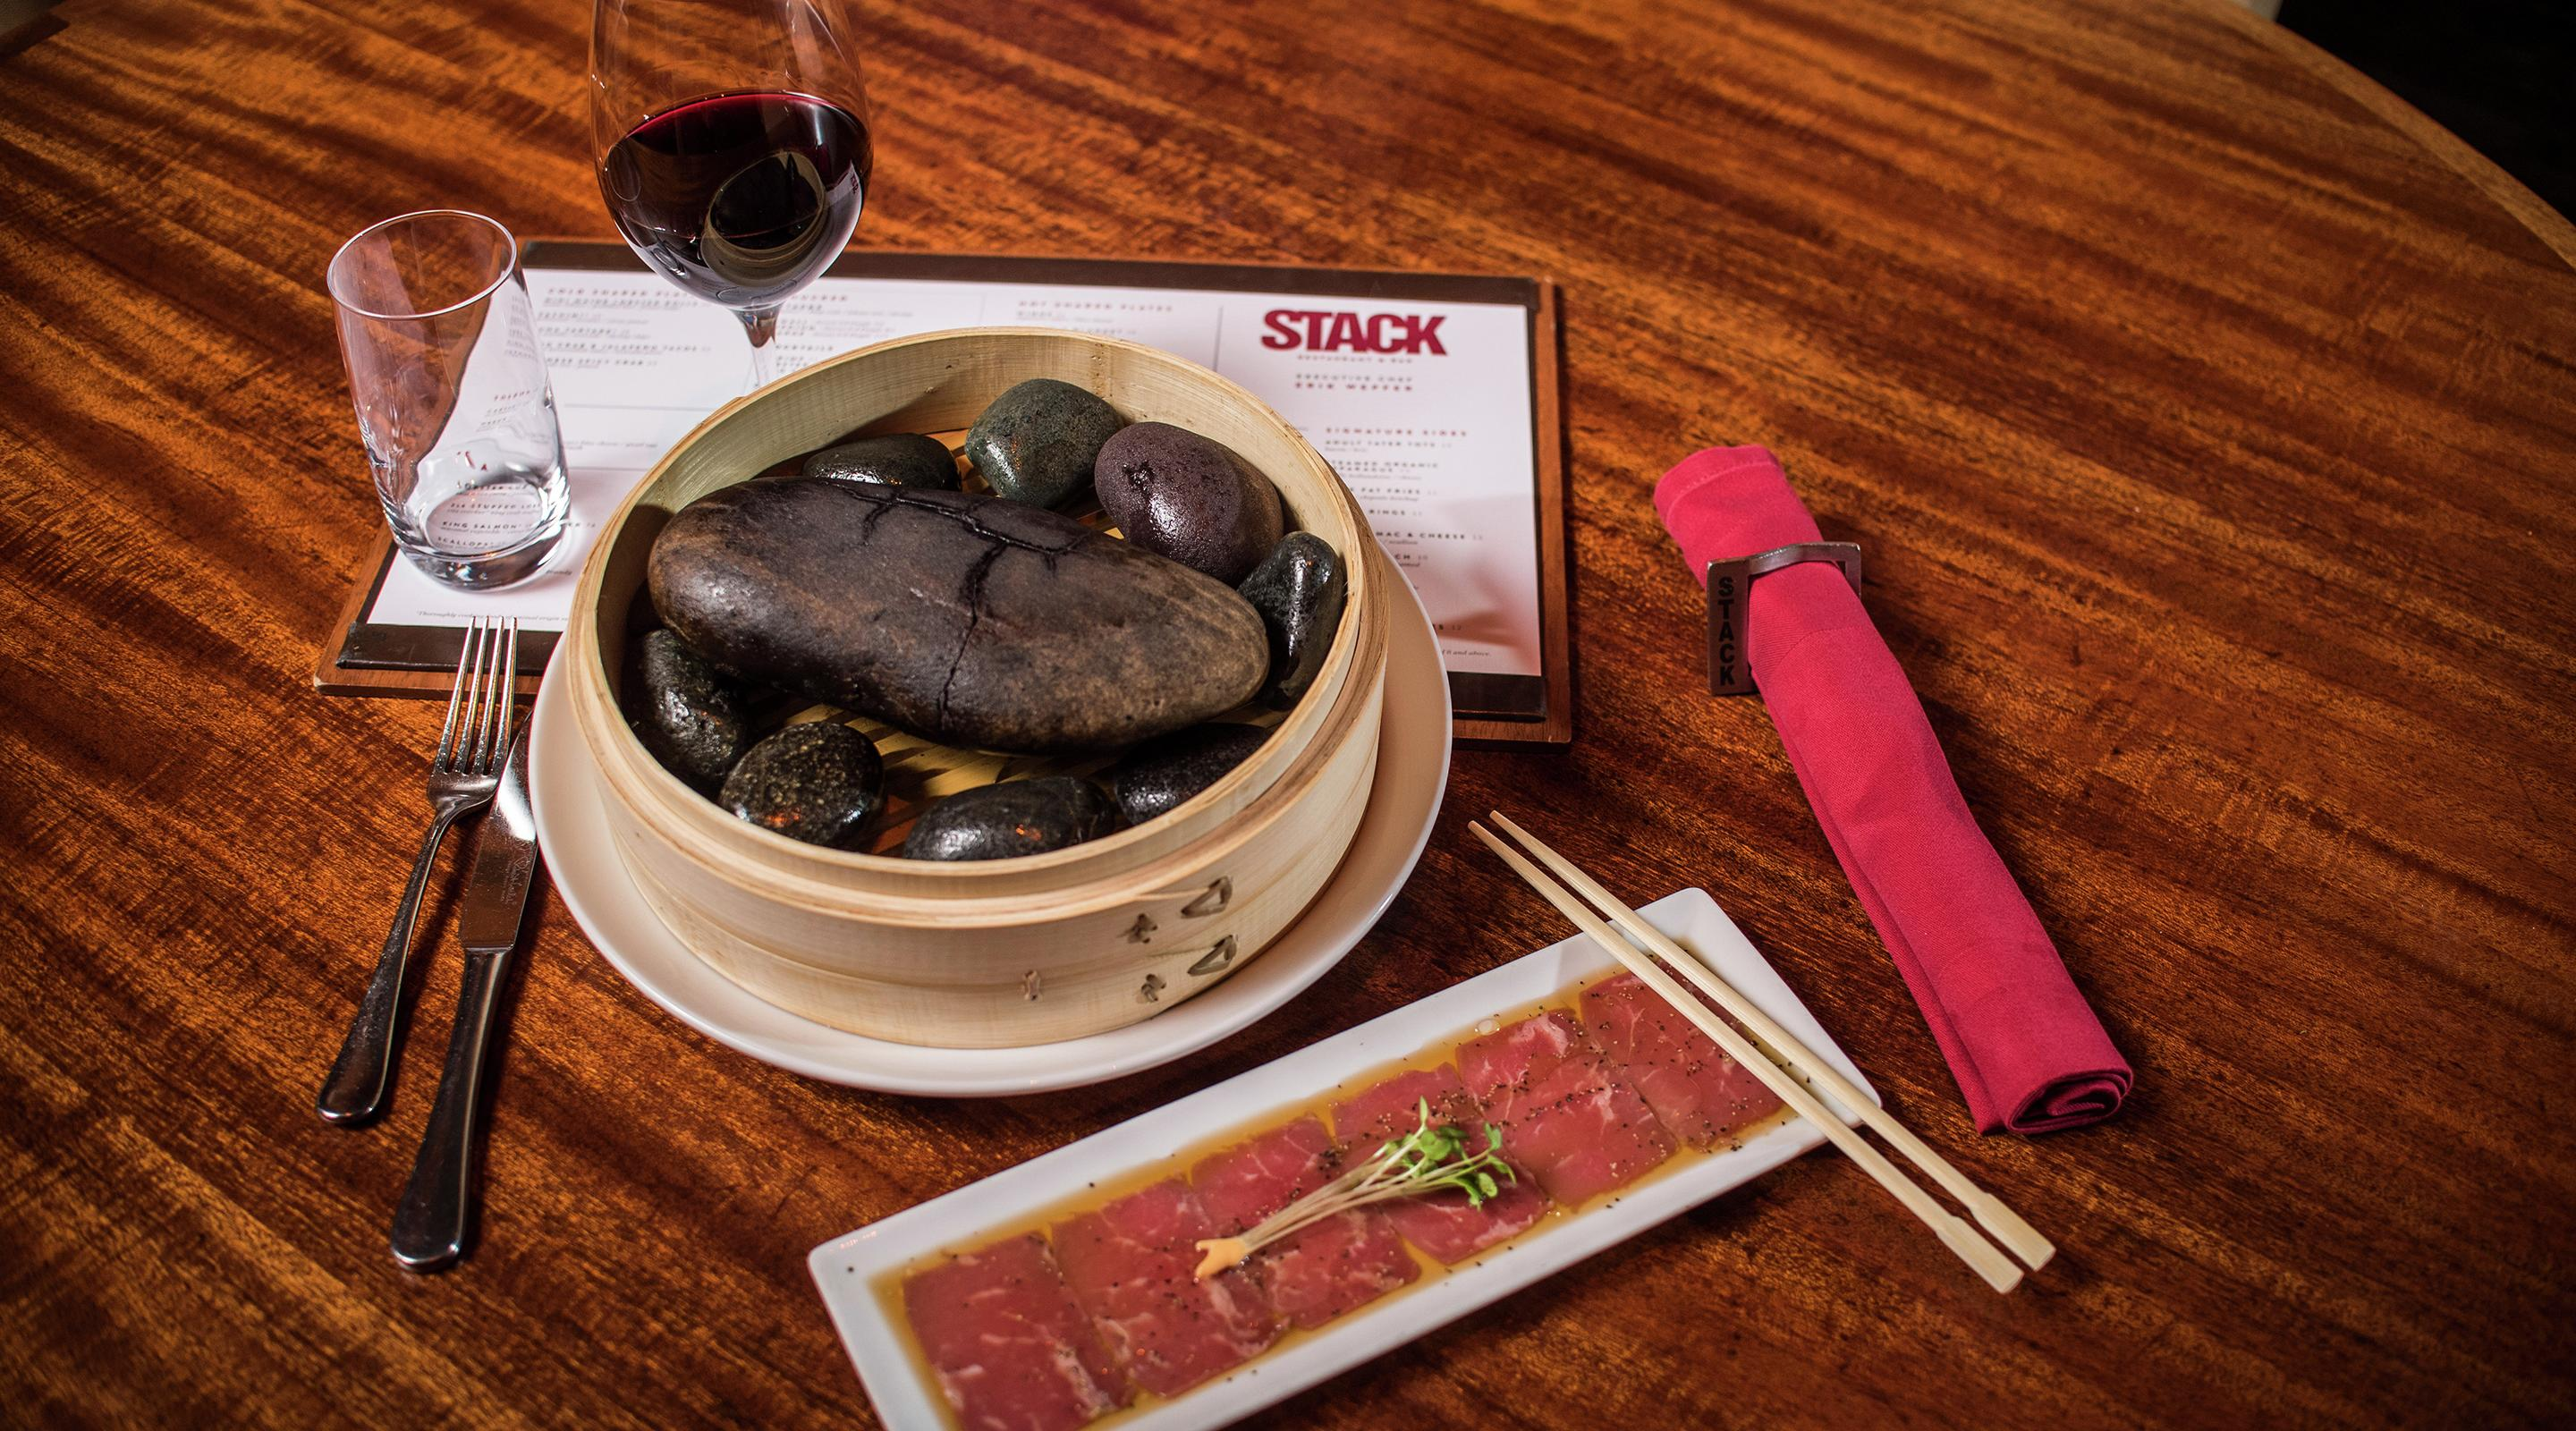 Hot Rocks is a dish where the guest can cook their own fresh sirloin to perfection.